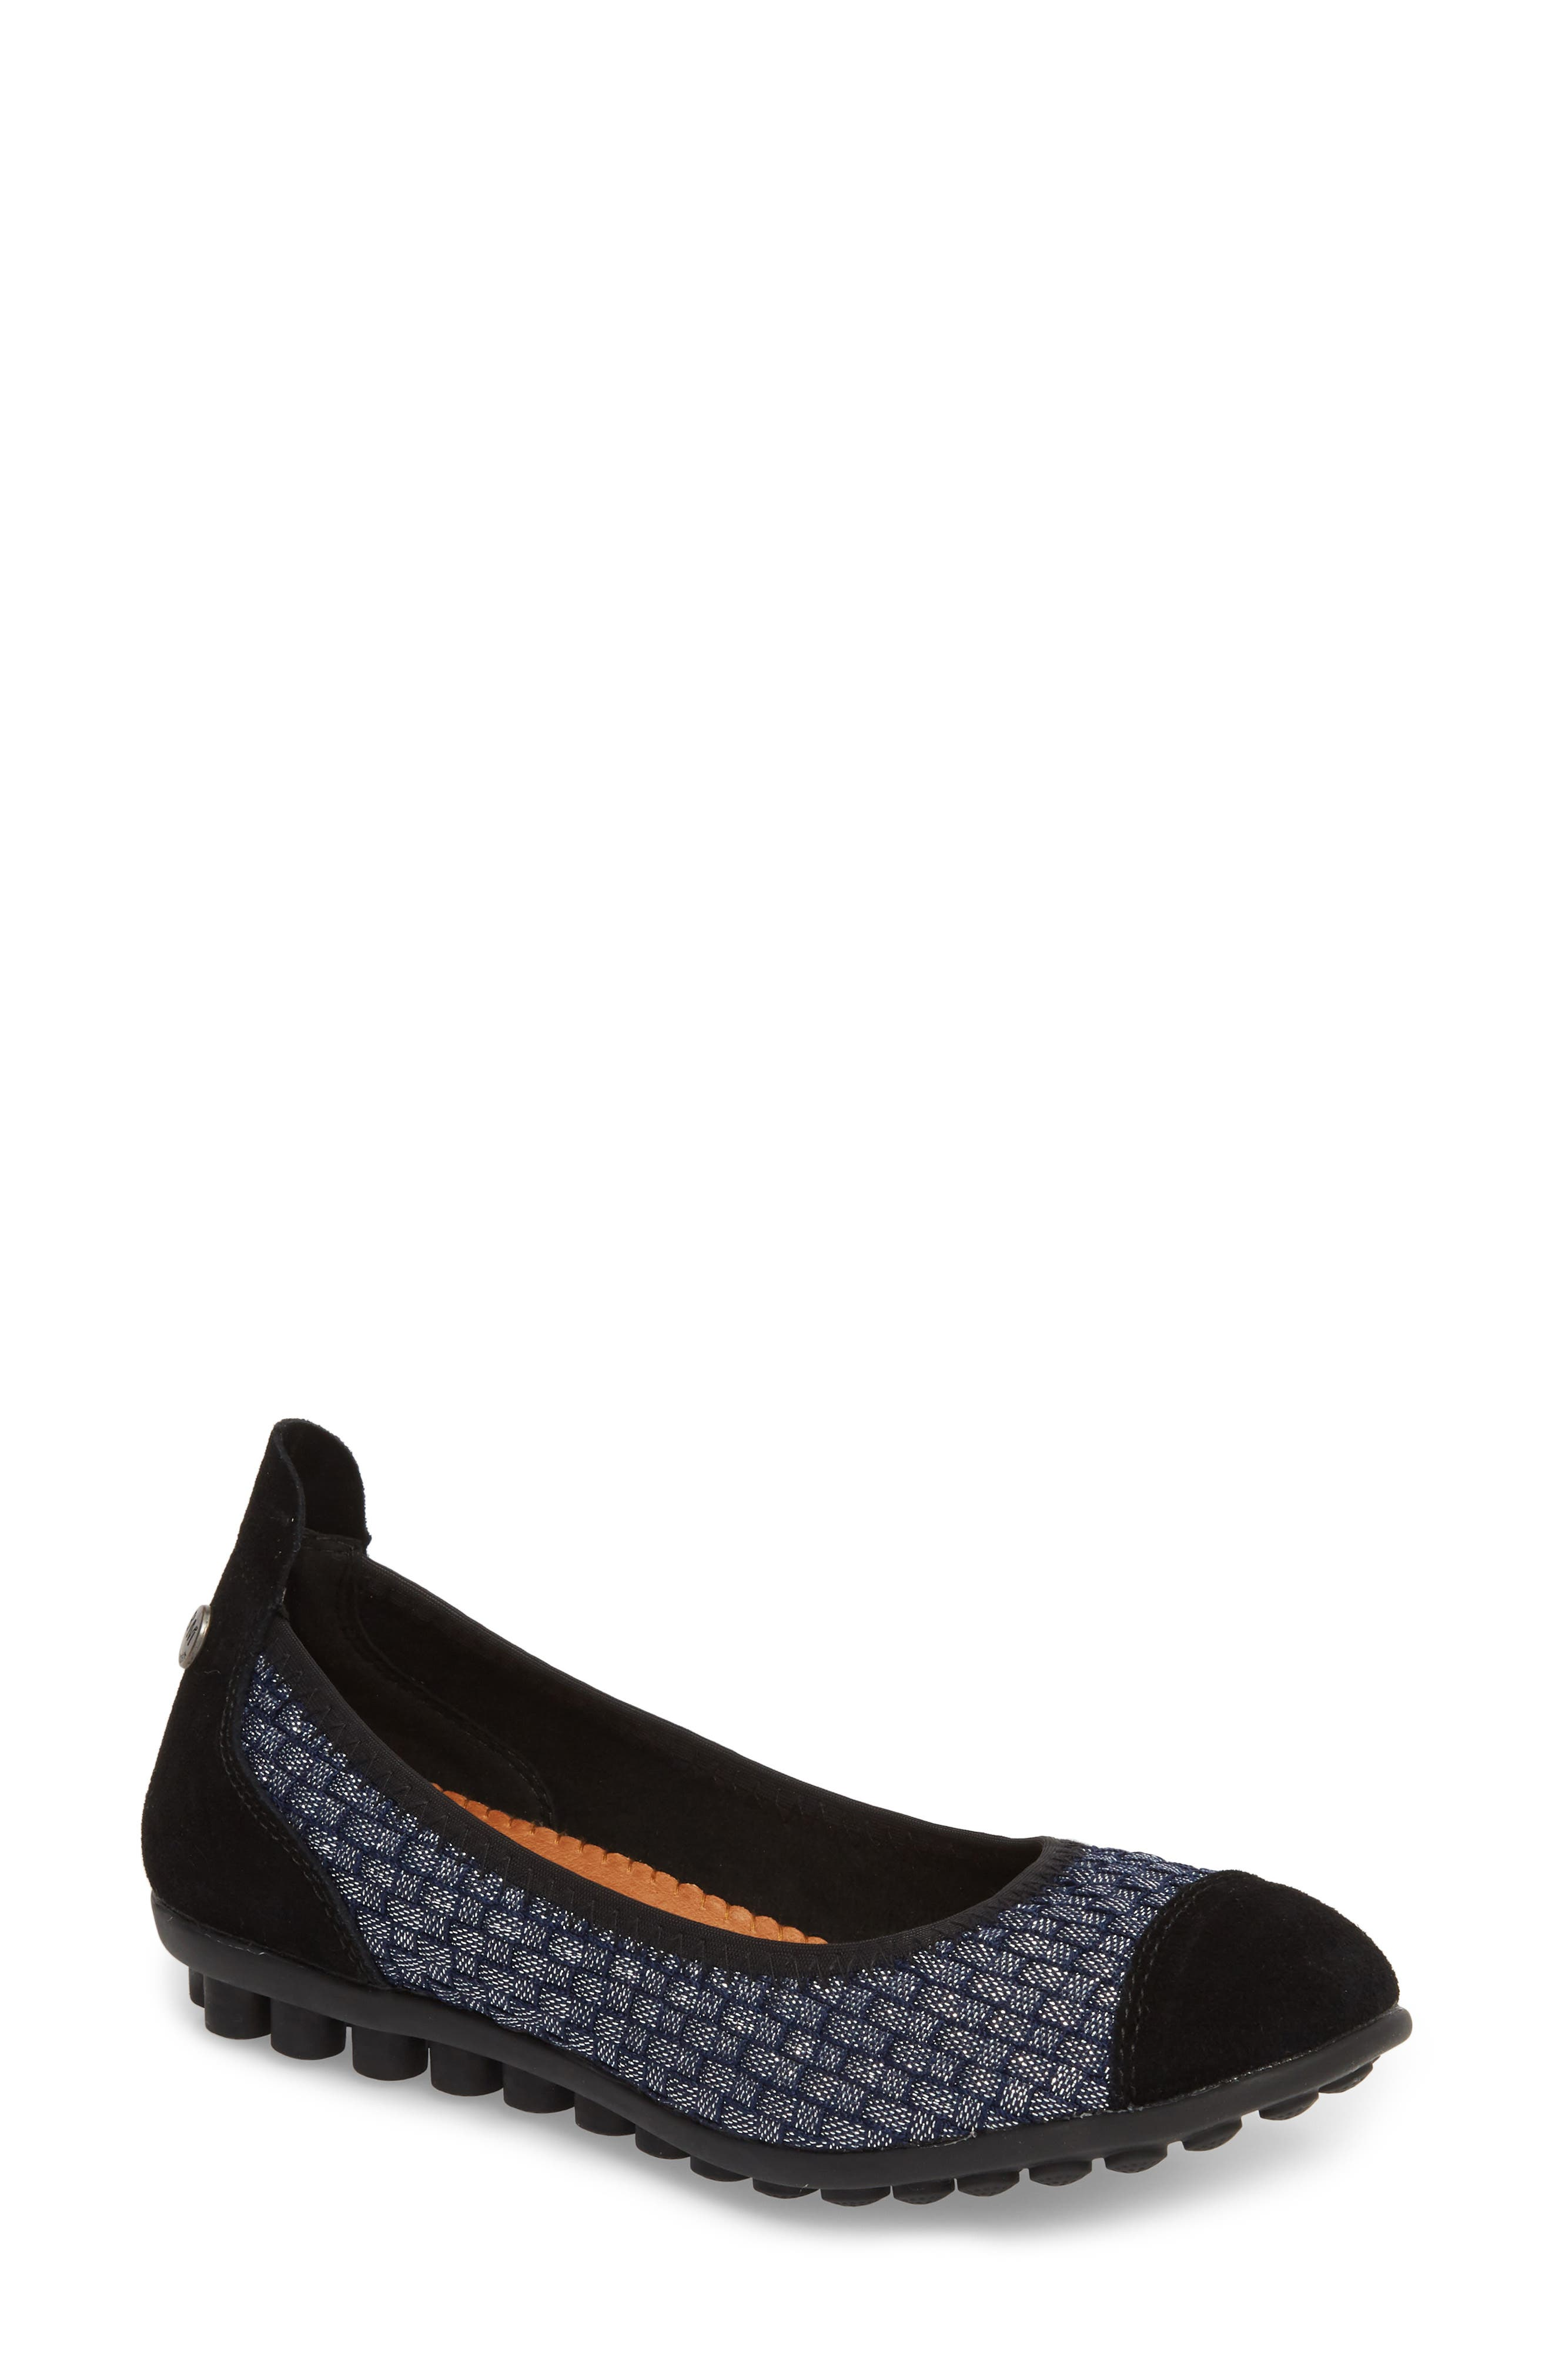 'Bella Me' Woven Flat,                         Main,                         color, NAVY SHIMMER FABRIC